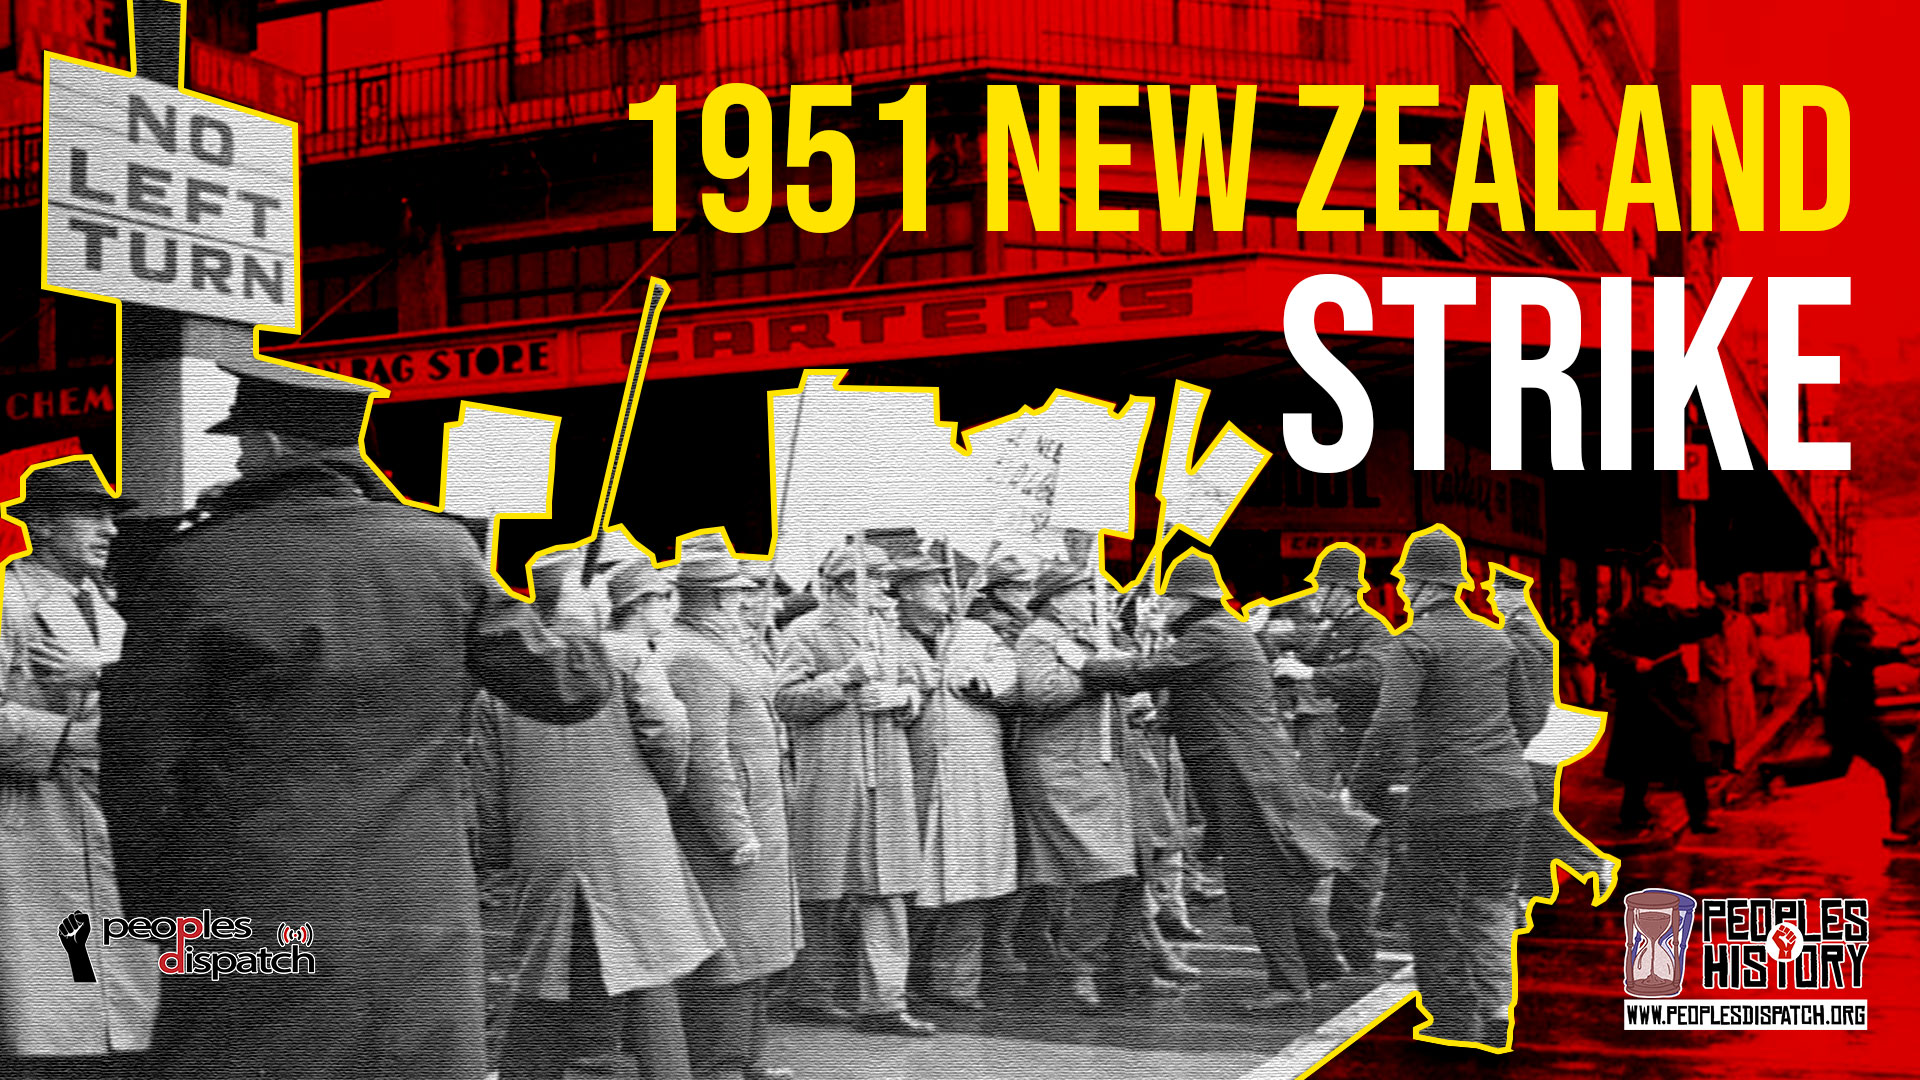 1951 New Zealand waterfront strike